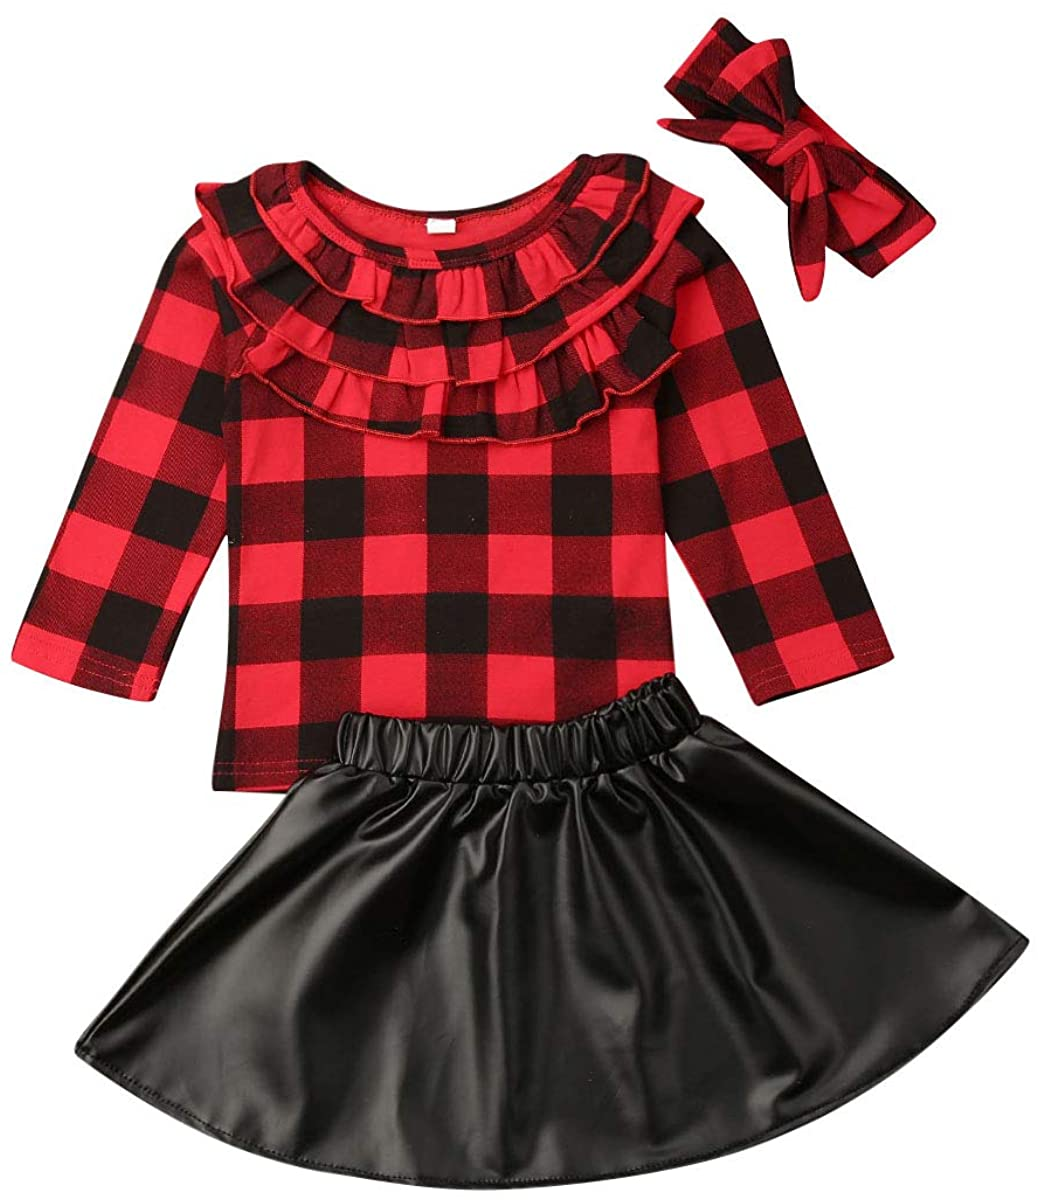 Toddler Baby Girl Christmas Outfits Ruffle Red Plaid T-Shirt Top+PU Leather Tutu Skirts Headhand 3pcs Winter Xmas Clothes